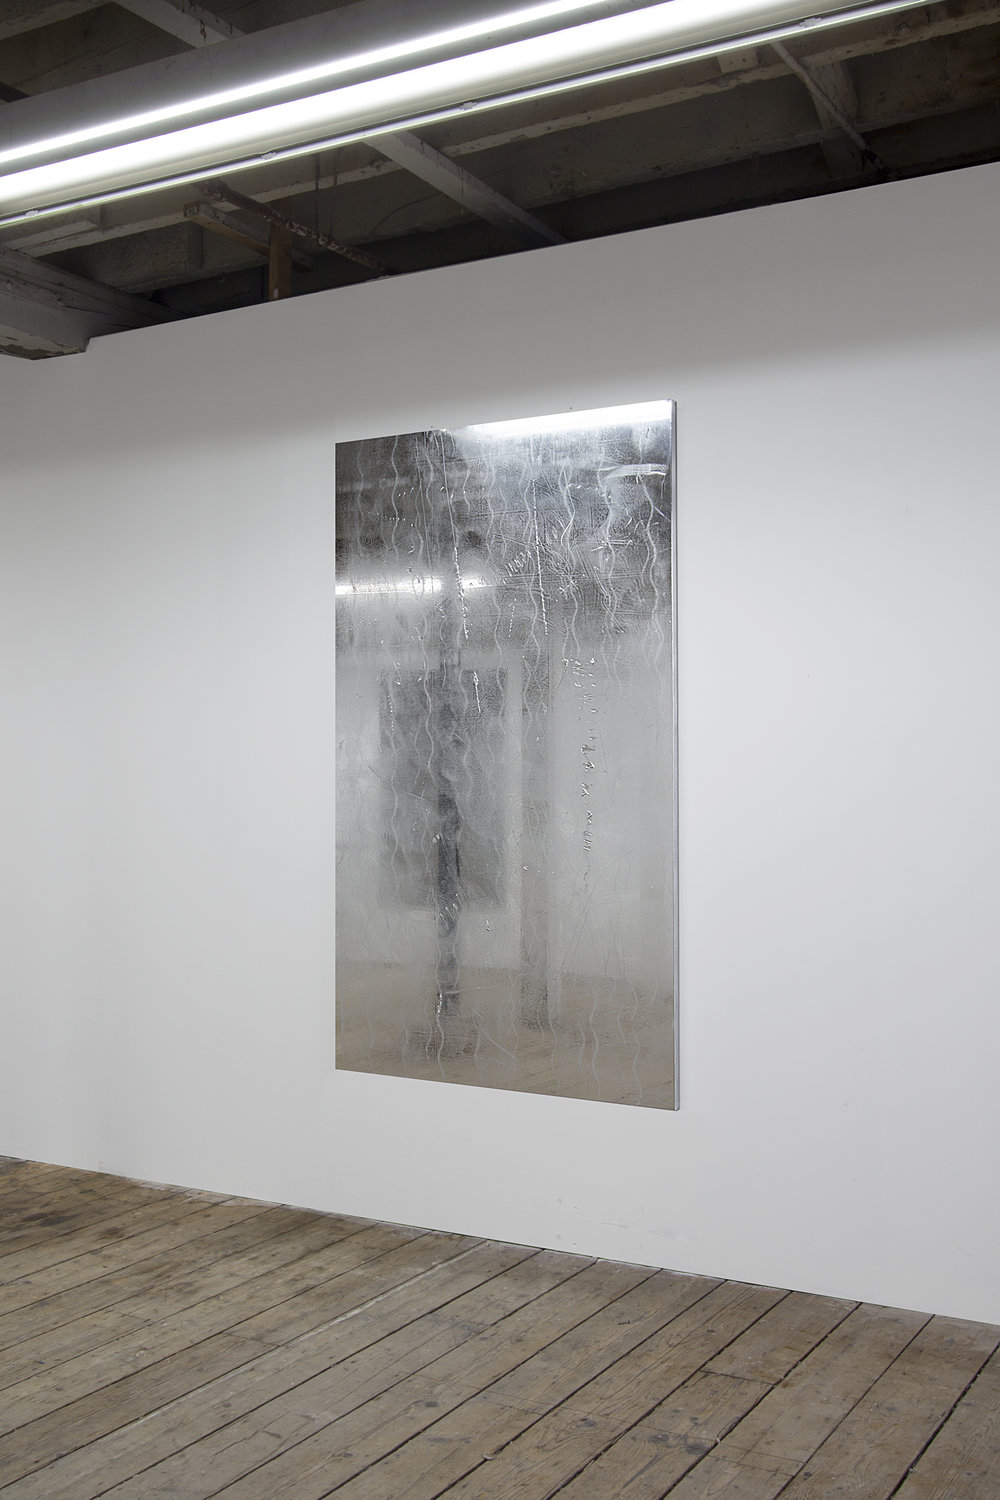 Mikkel Carl  Untitled (You Hate the Fact that You Bought the Dream and They Sold Your One),  2018  mirror foil mounted on canvas, aluminium stretcher bars 75 1⁄2 x 43 1⁄2 inches (183 x 110 cm) MC23